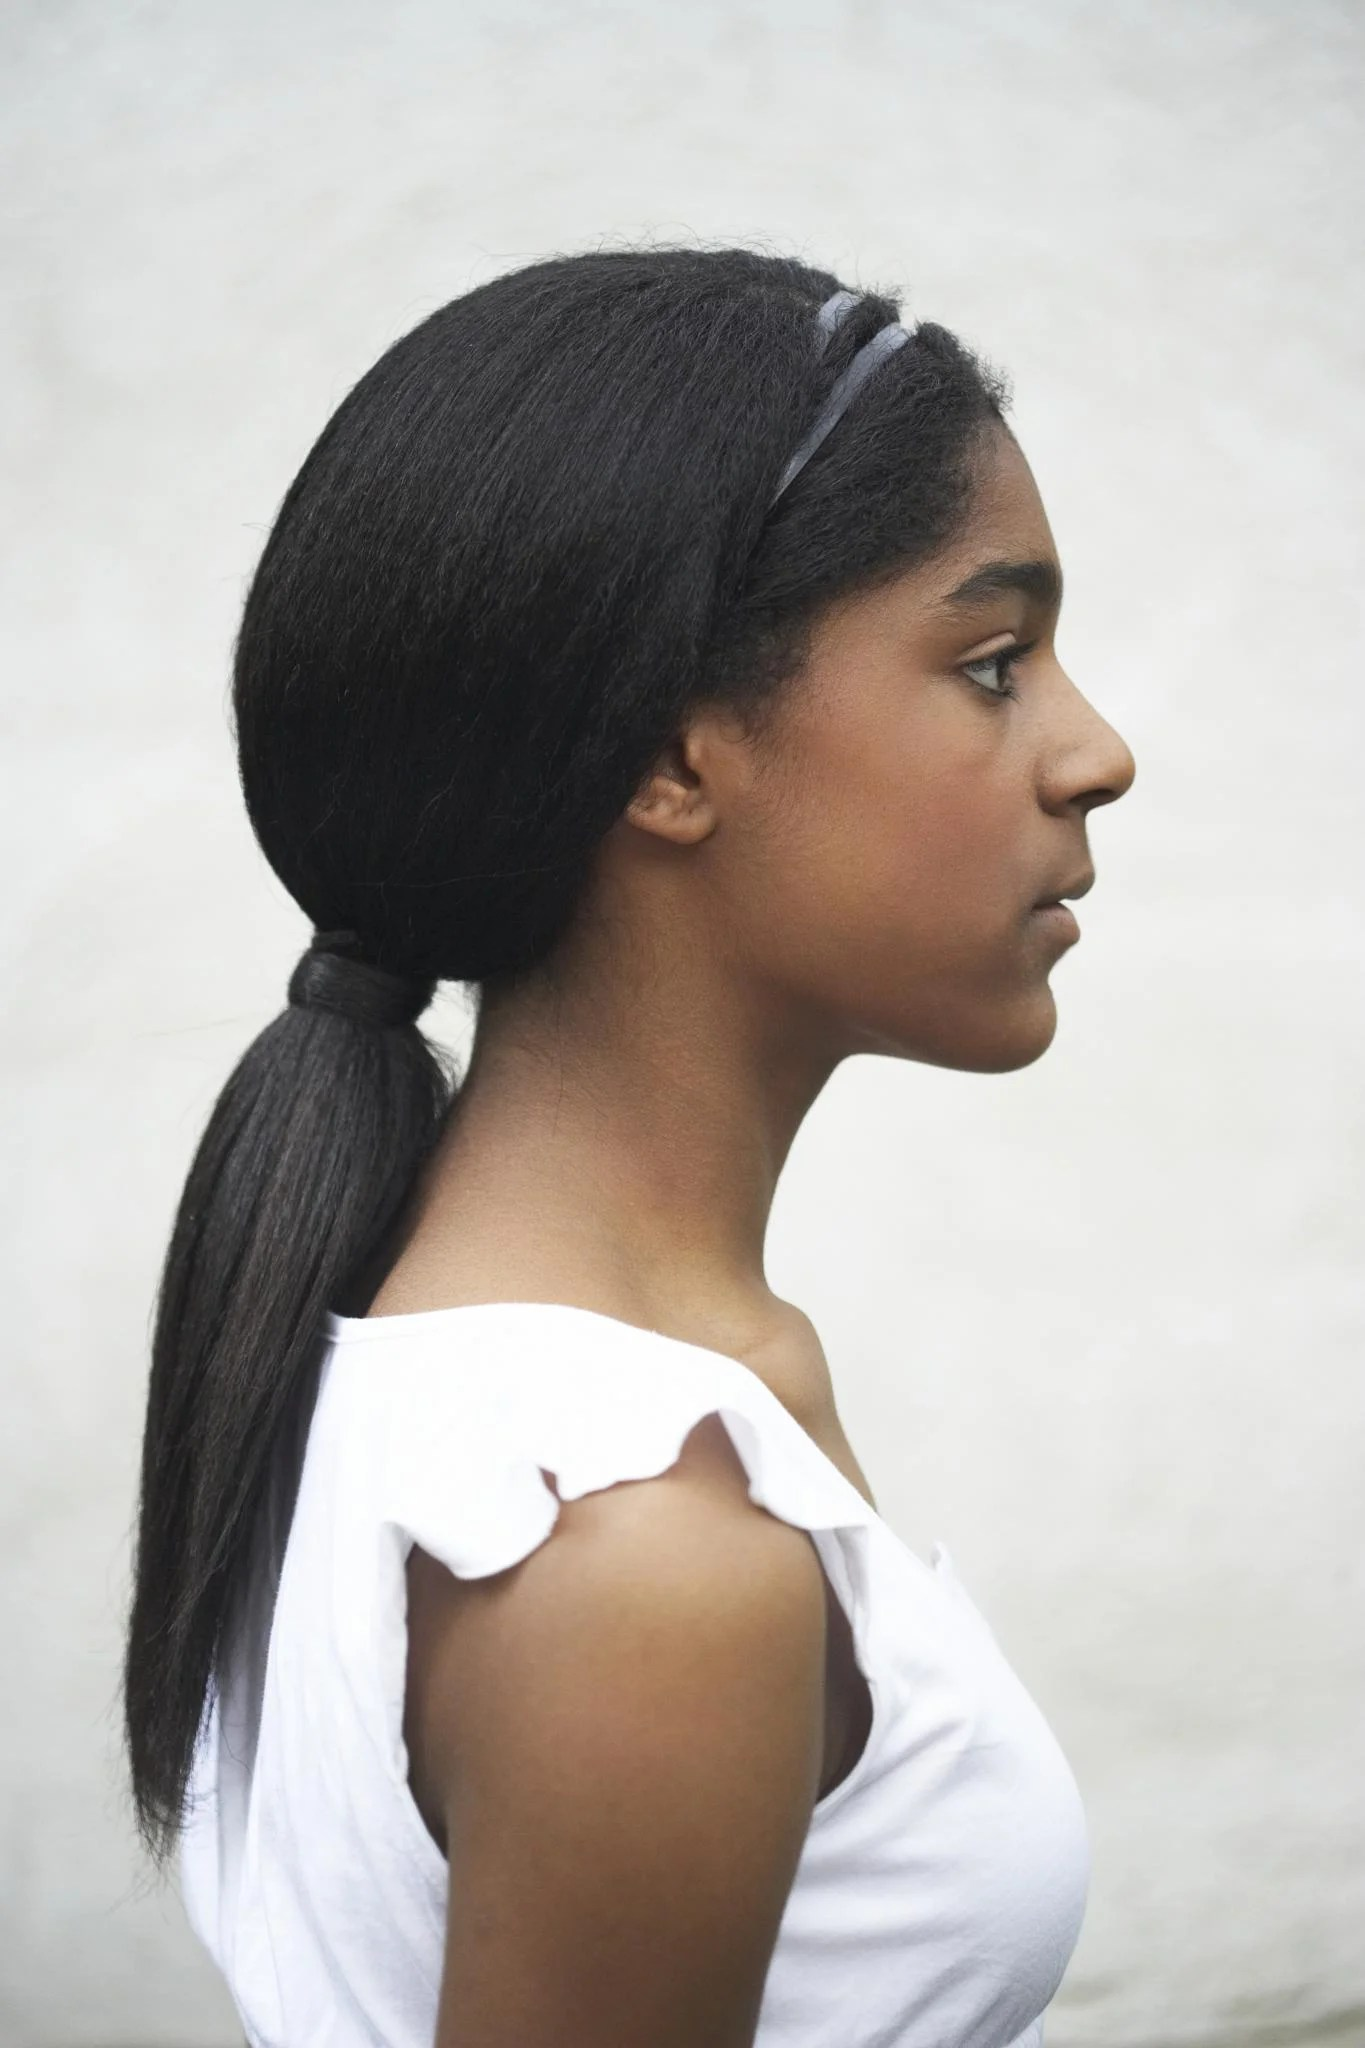 Sew Ins For 13 Year Olds : Young, Weave?, Essence